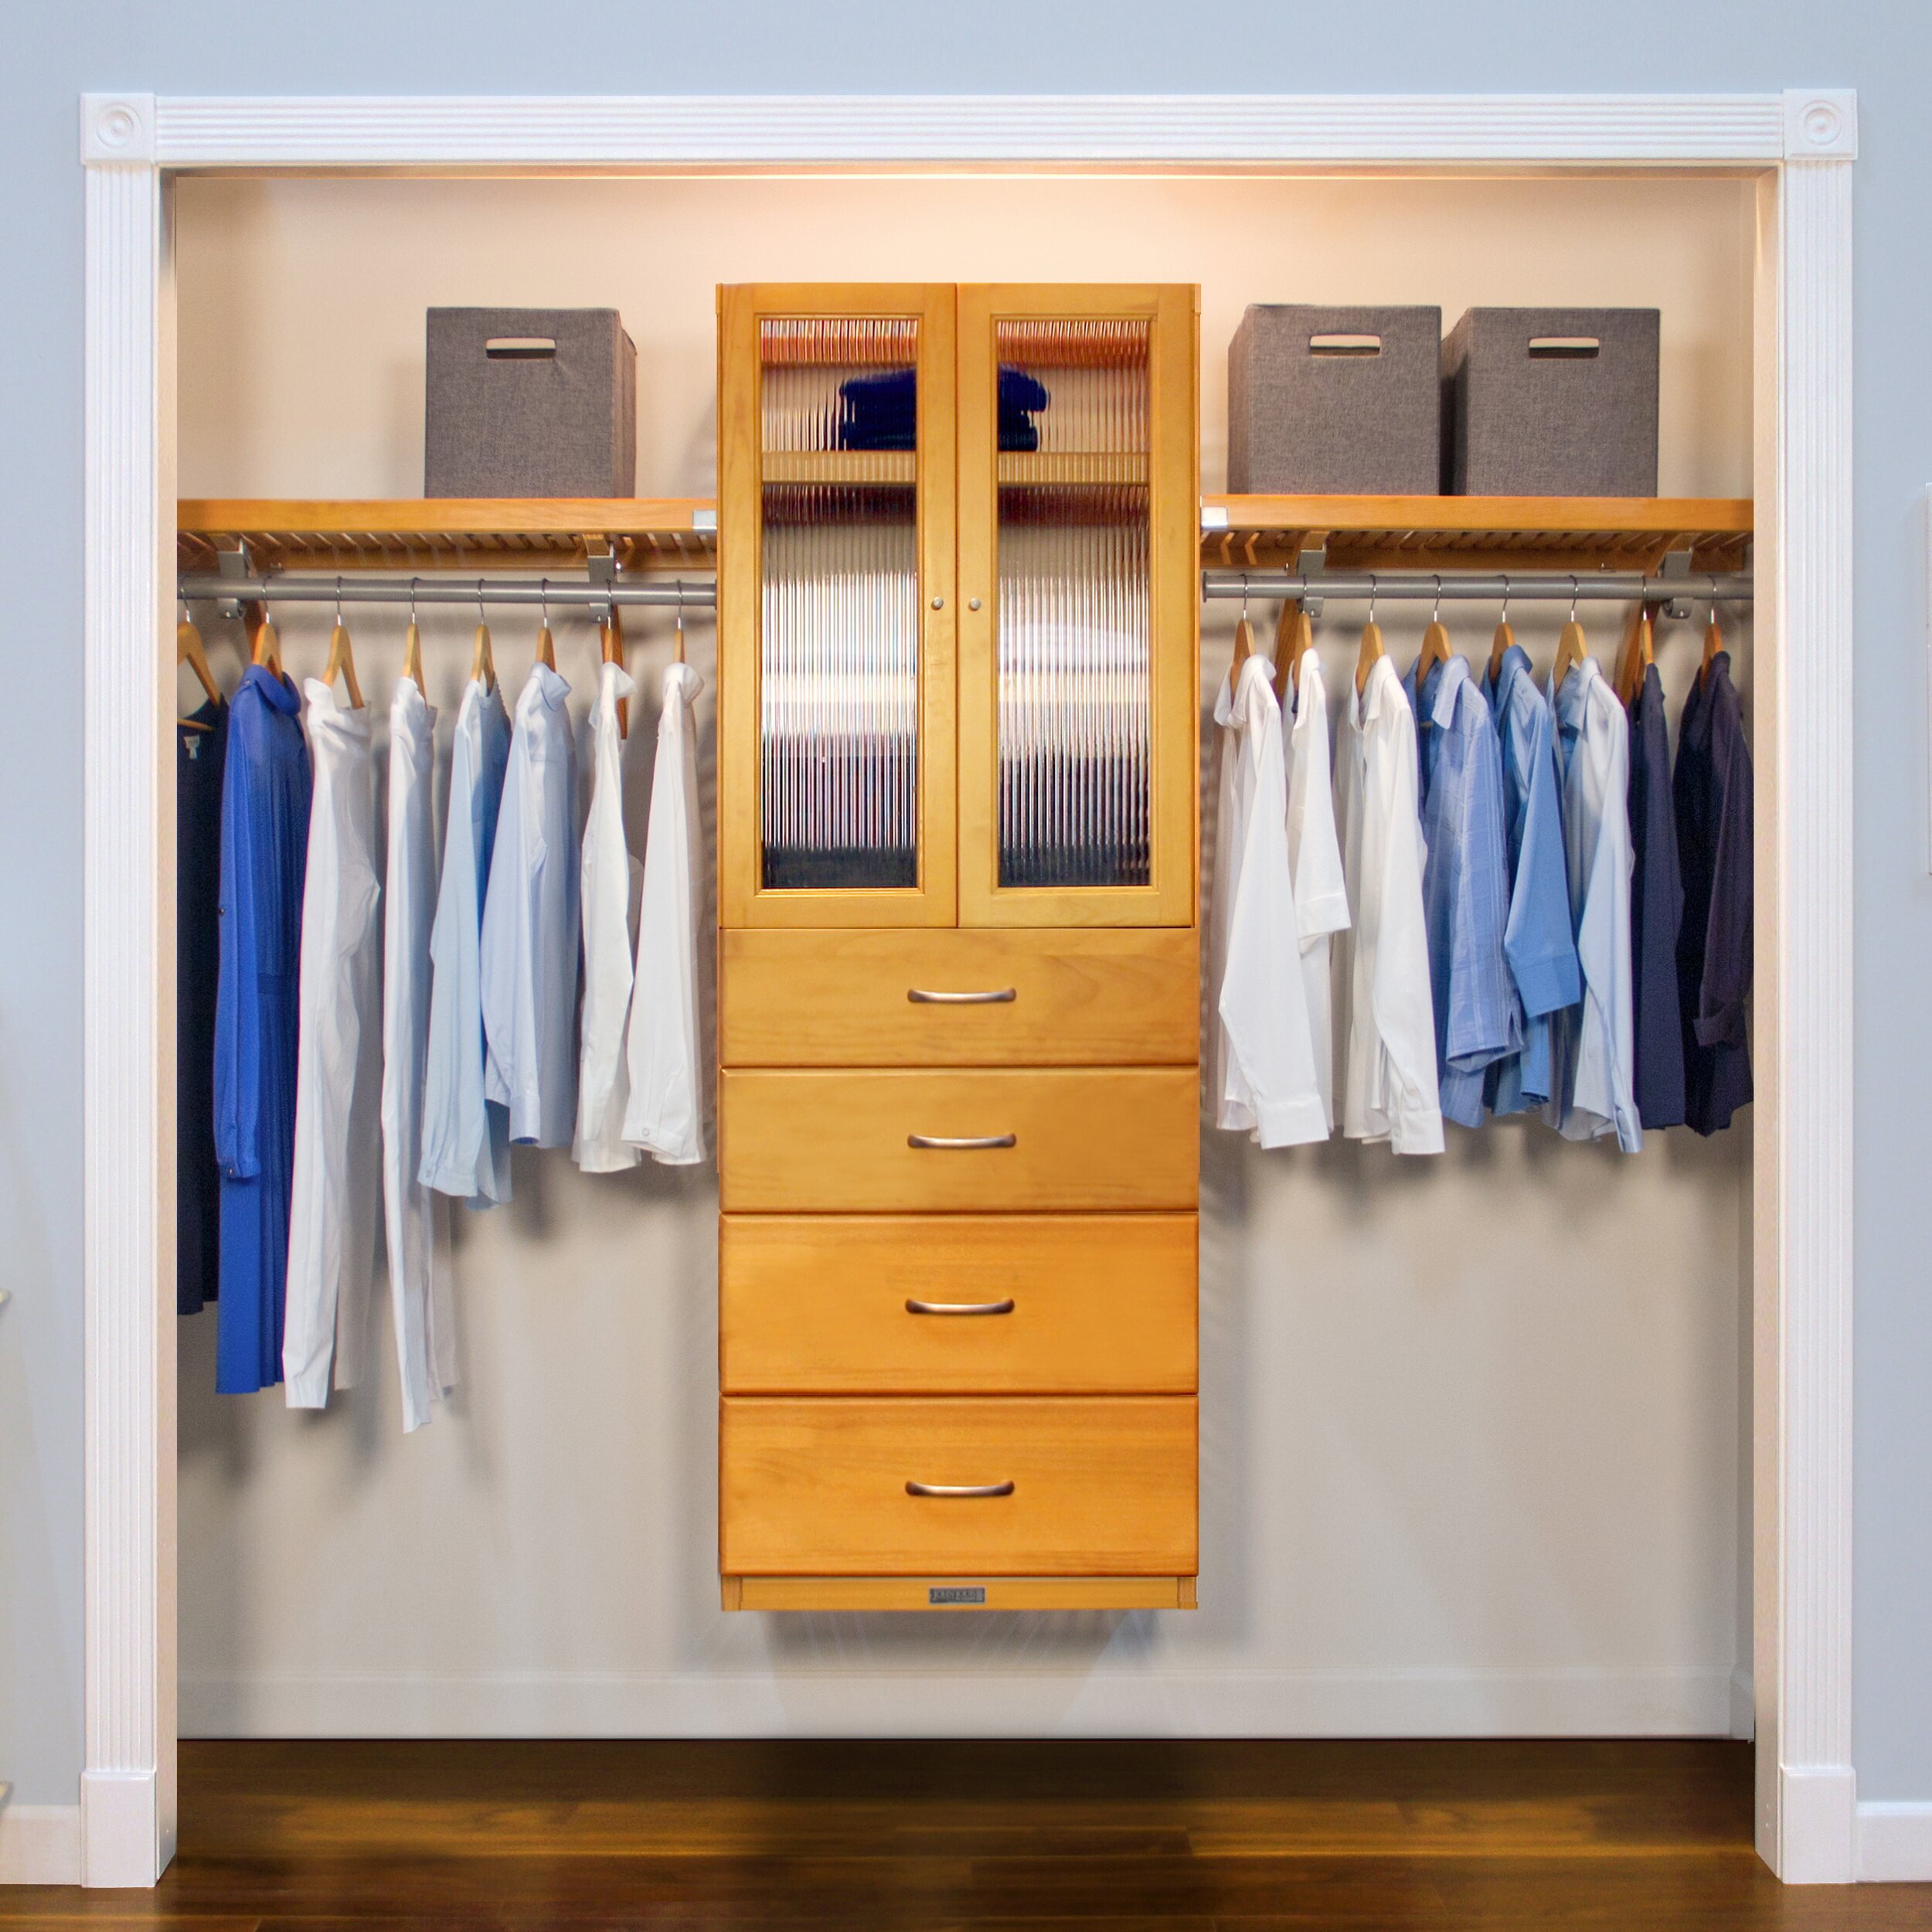 John louis home 120 w closet system reviews wayfair for One day doors and closets reviews